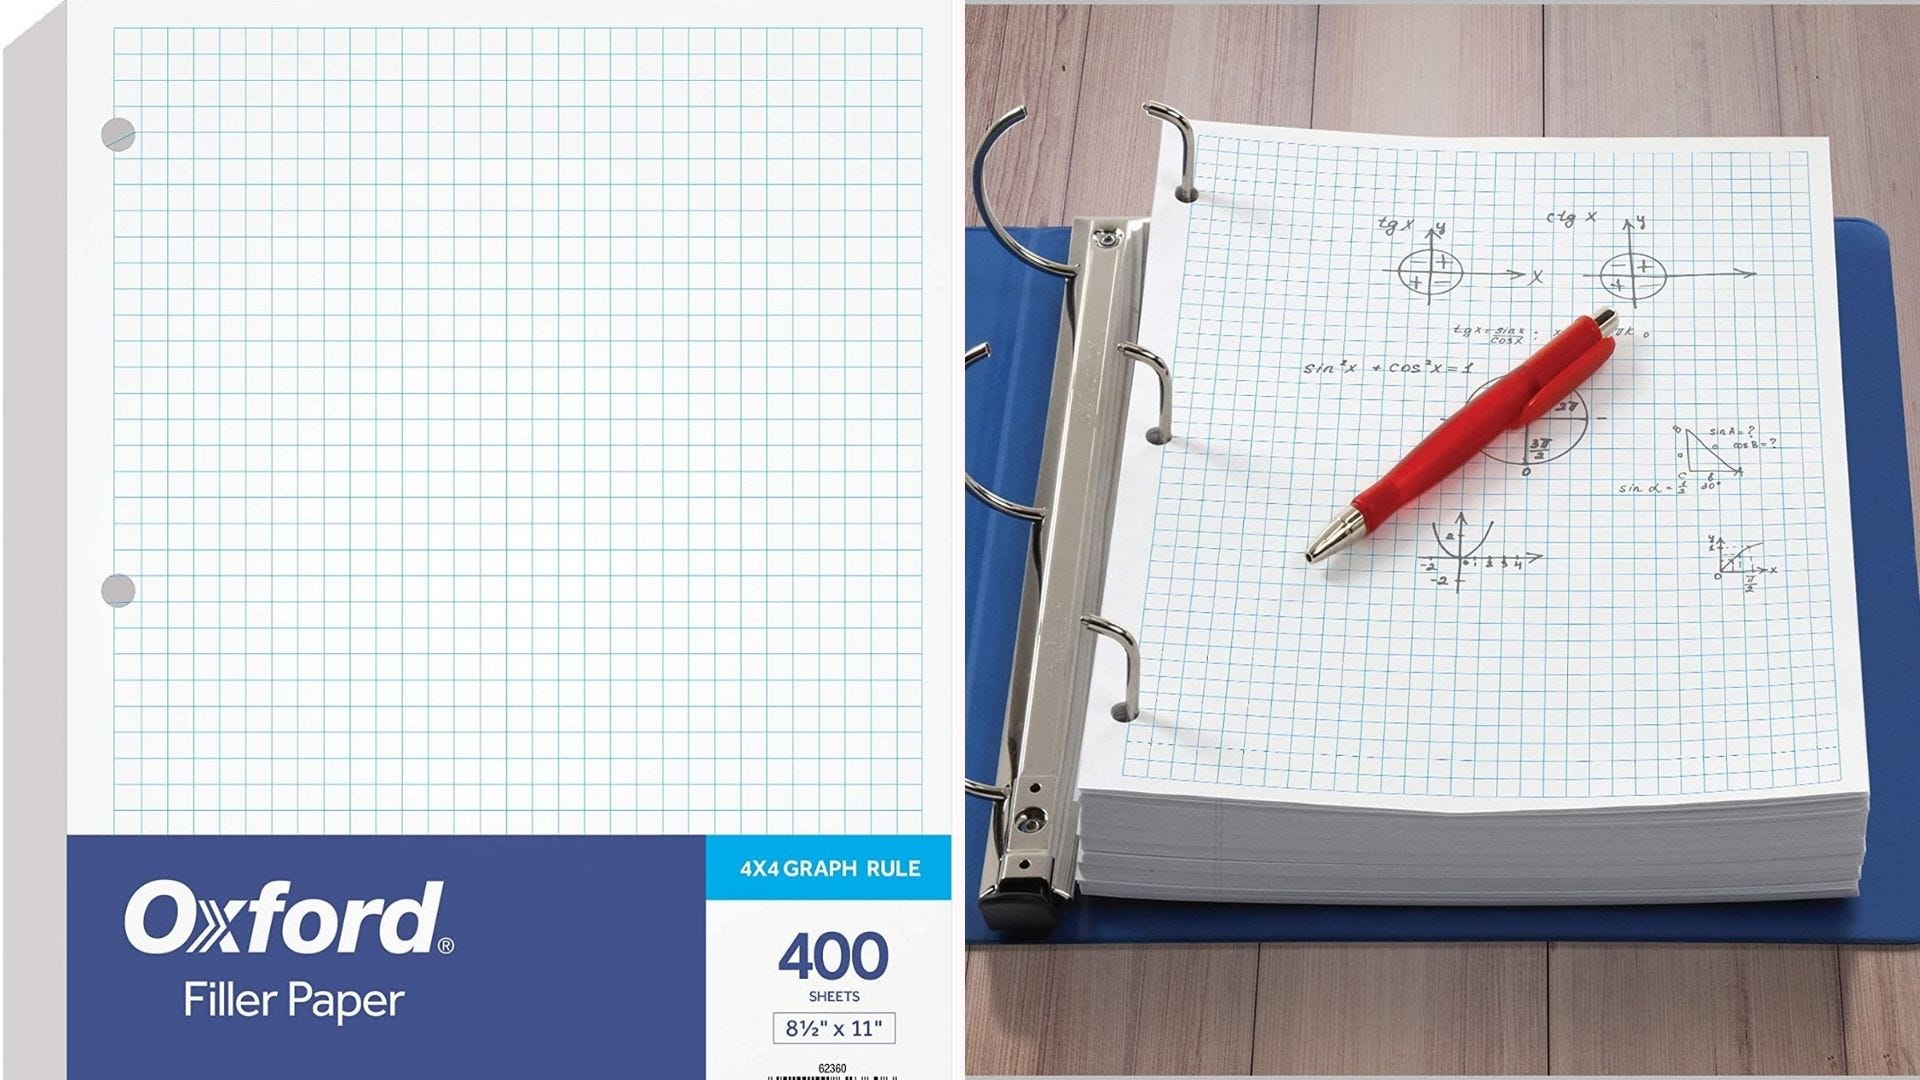 On the left, a 400-page stack of loose leaf, 4-by-4 graph paper. On the right, the loose leaf stack sits in the prongs of a three-ringed binder.